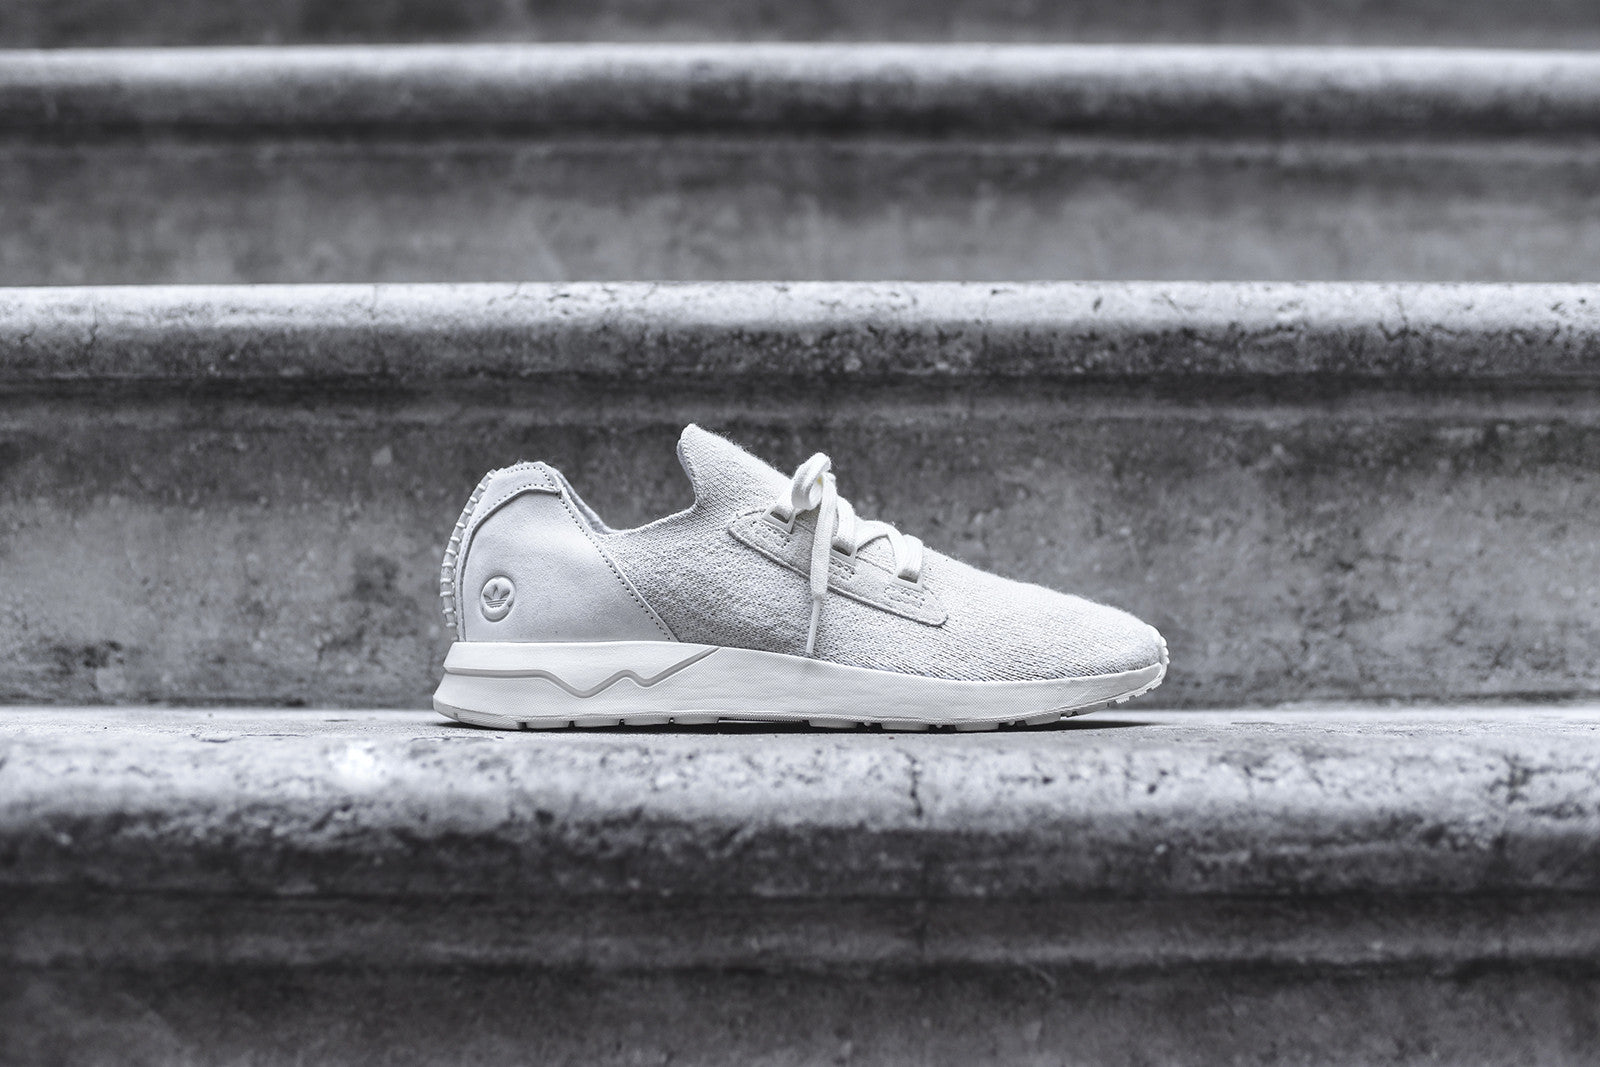 adidas Consortium x Wings + Horns ZX Flux ADV PK - Off White